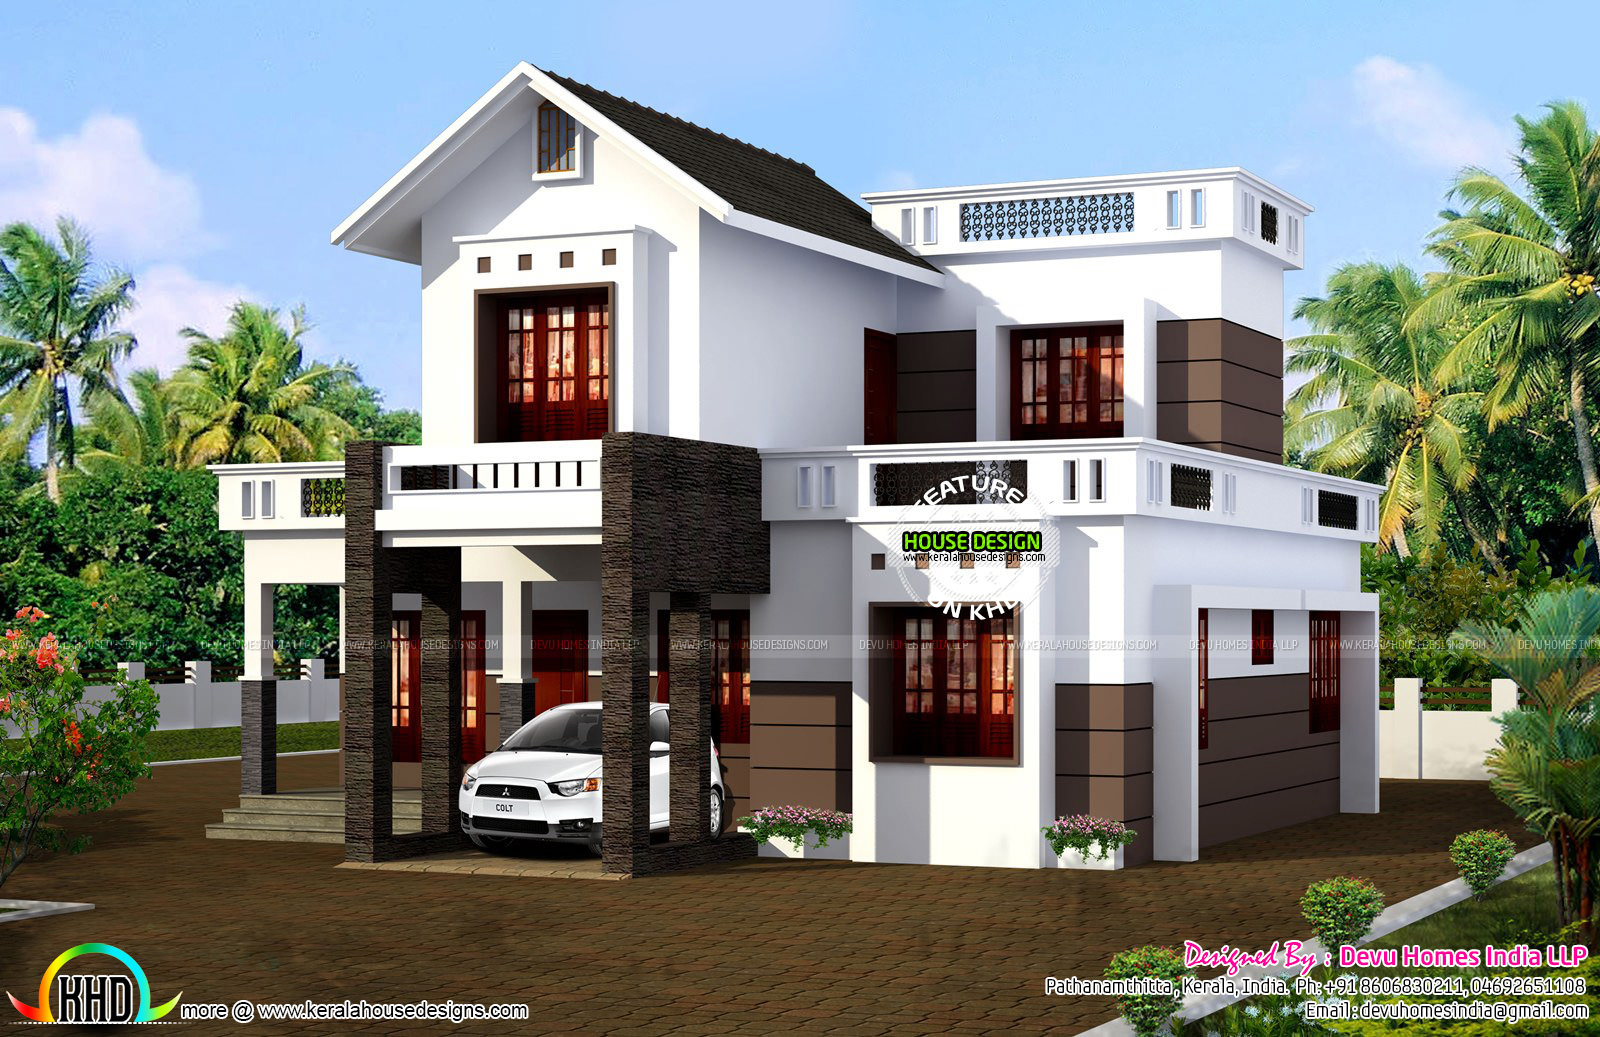 Simple 1524 sq ft house plan kerala home design and for Simple kerala home designs